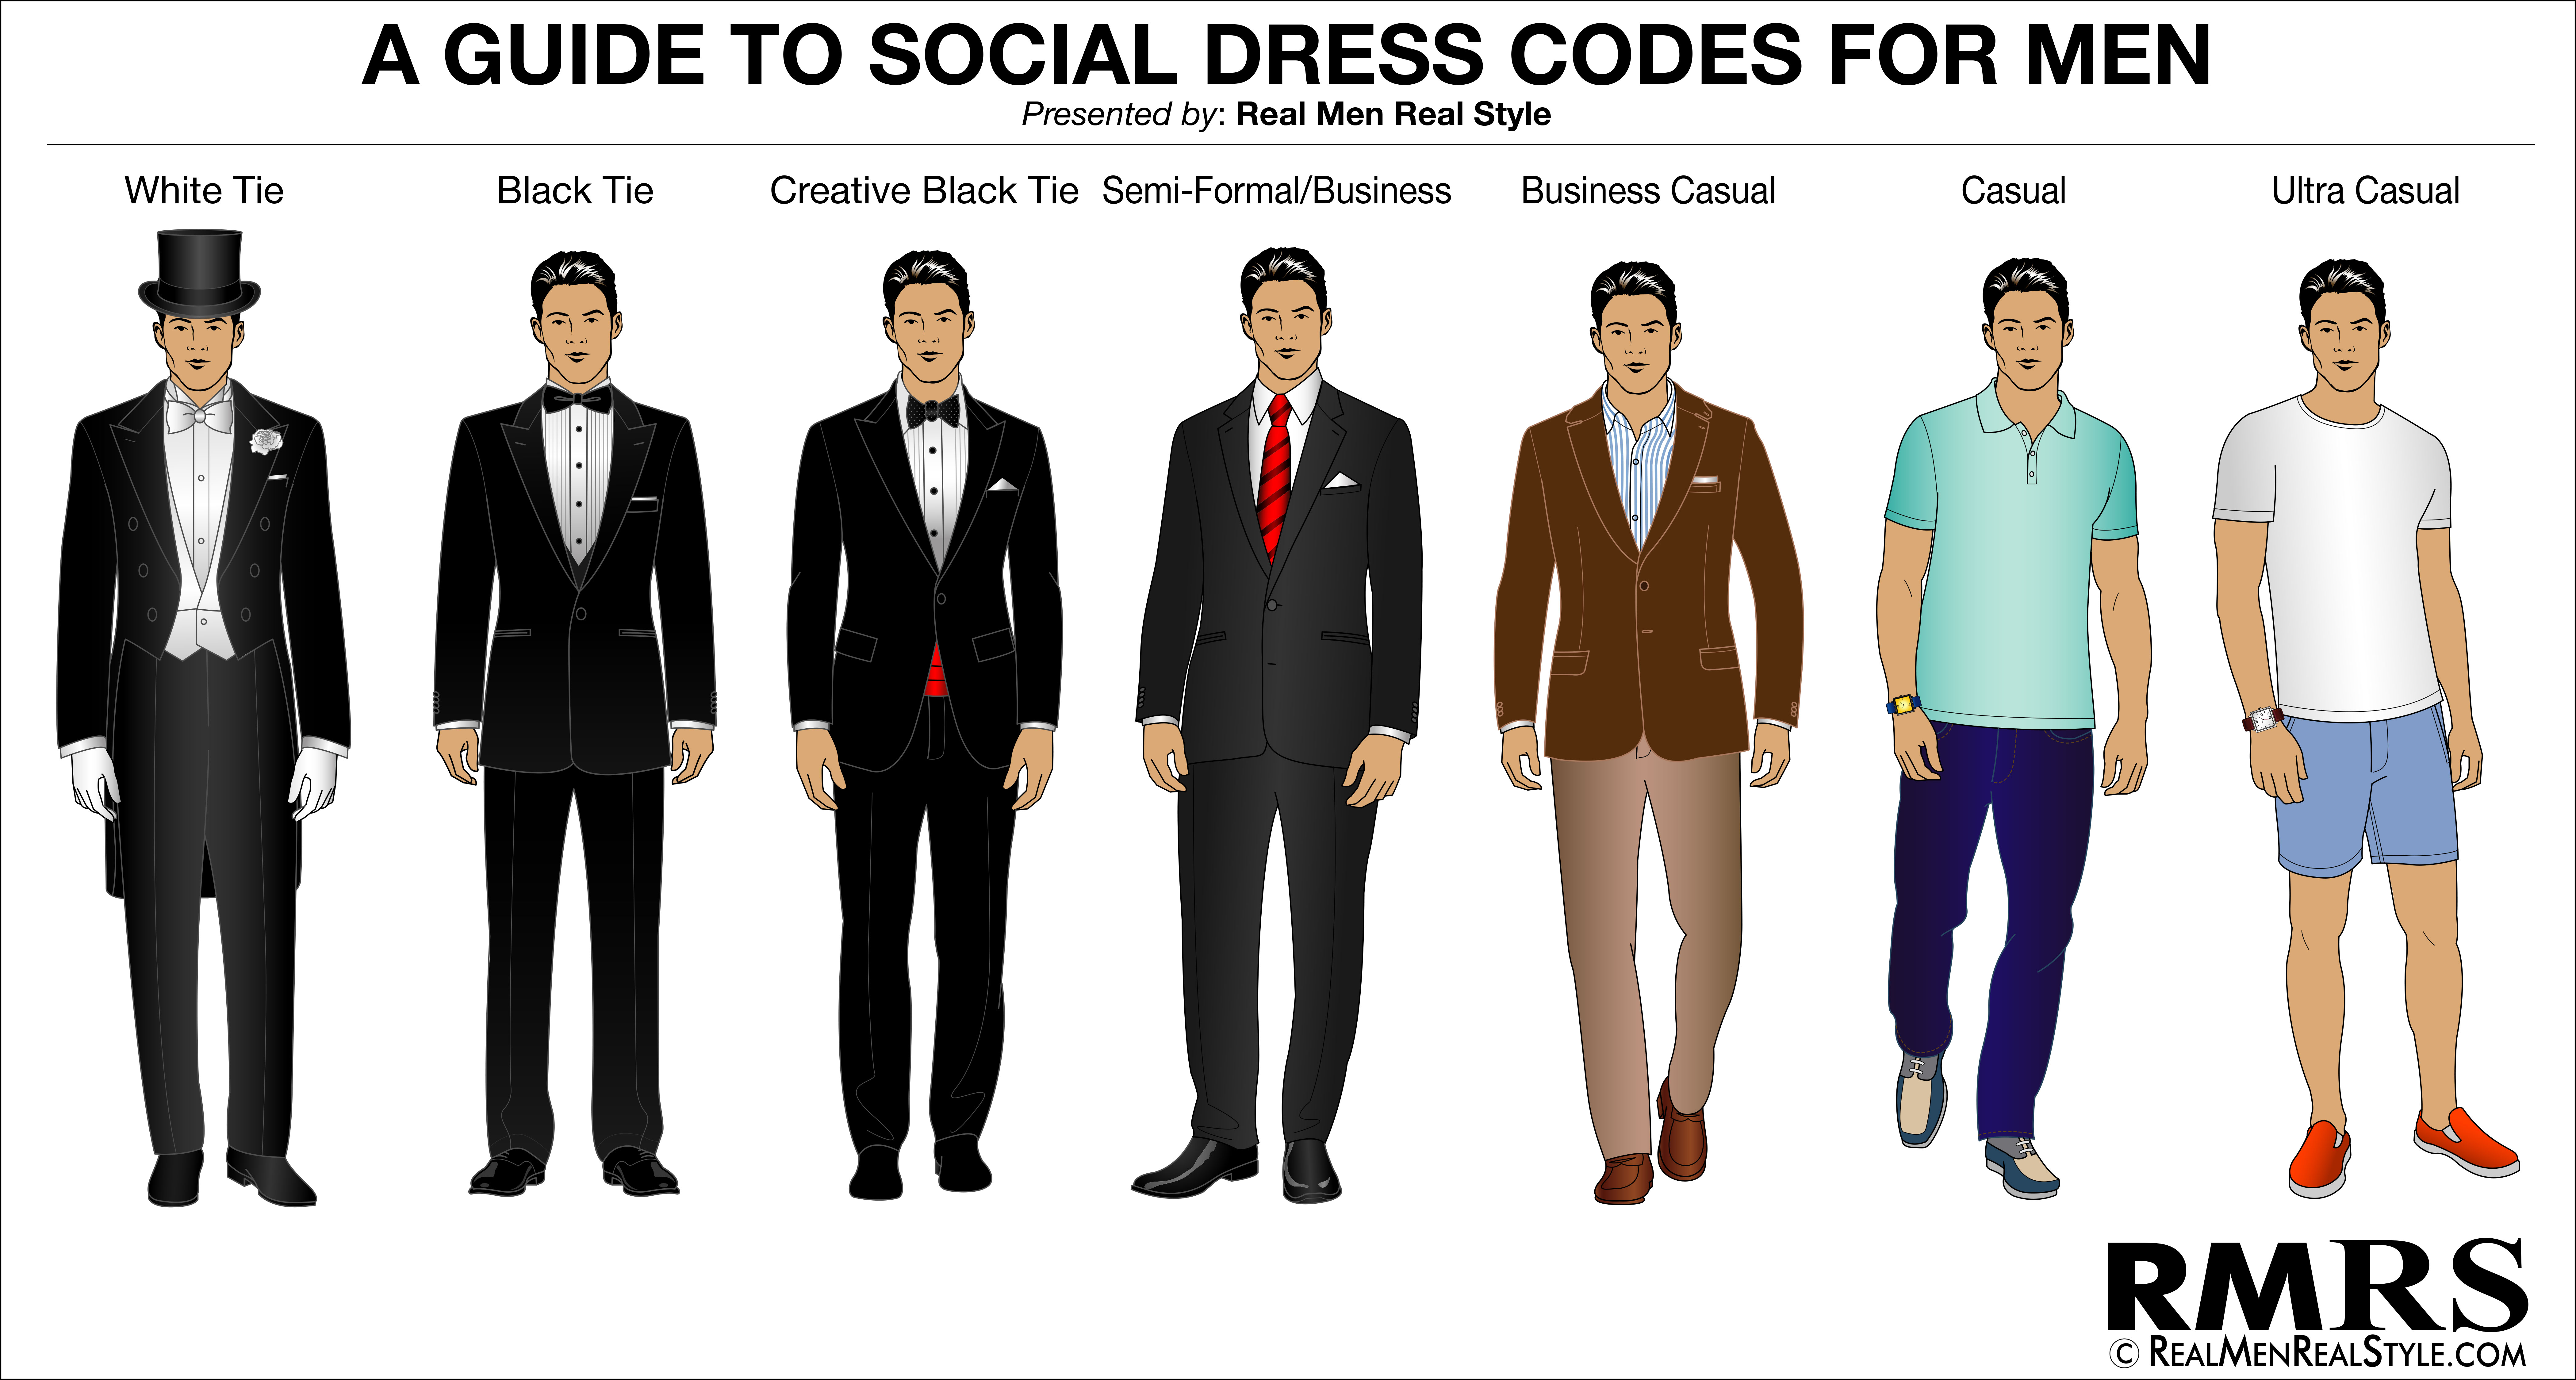 a-guide-to-social-dress-codes-for-men-side-by-side-r3